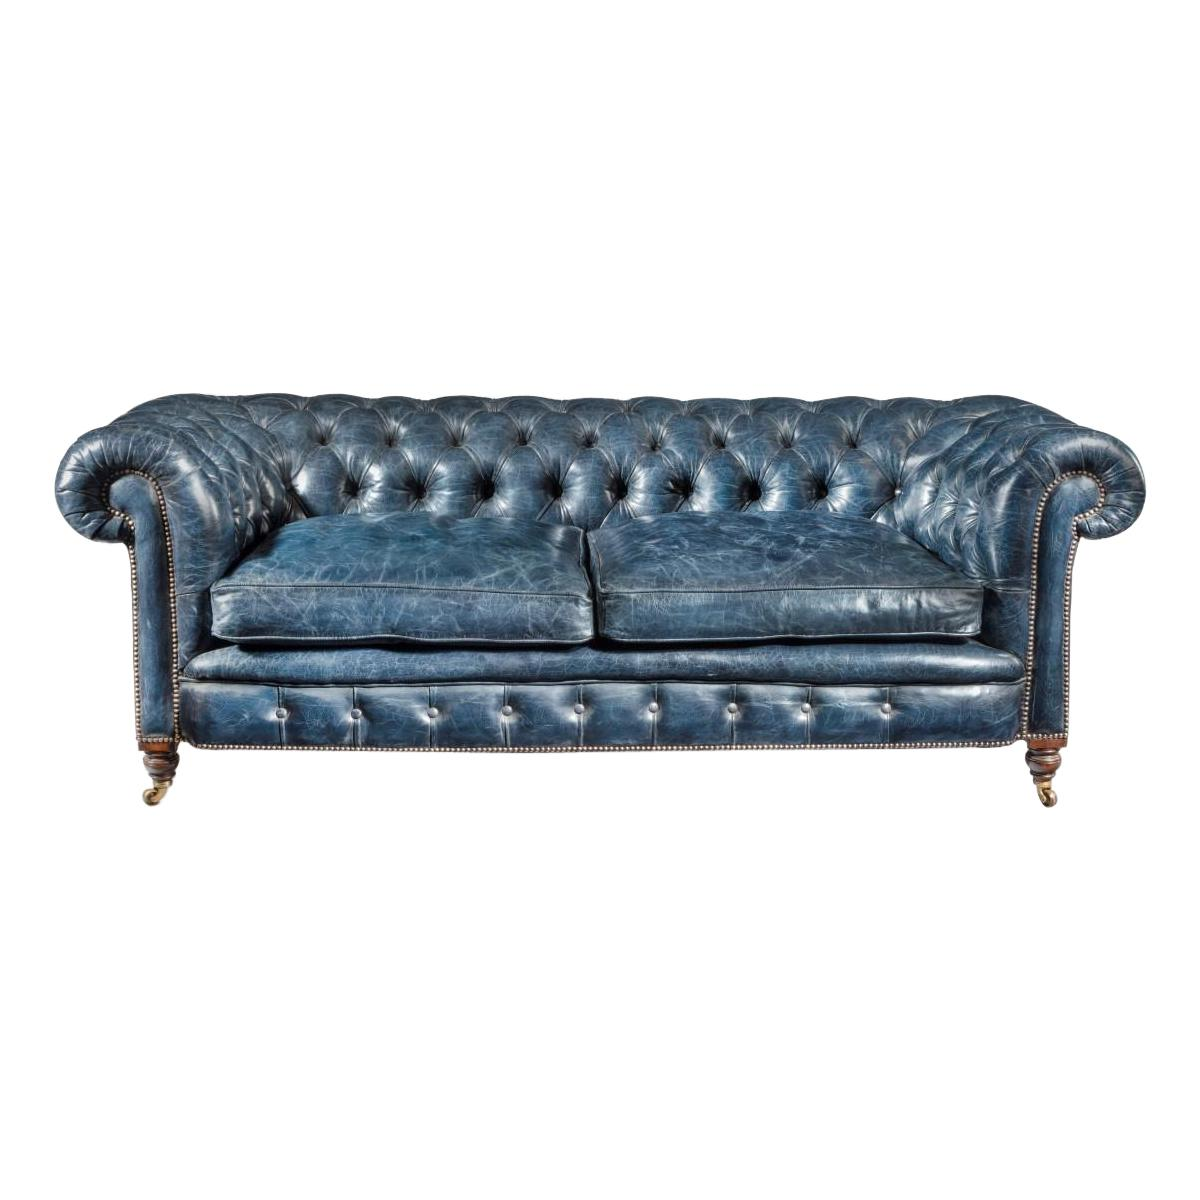 Victorian 2-Seater Leather Chesterfield Sofa